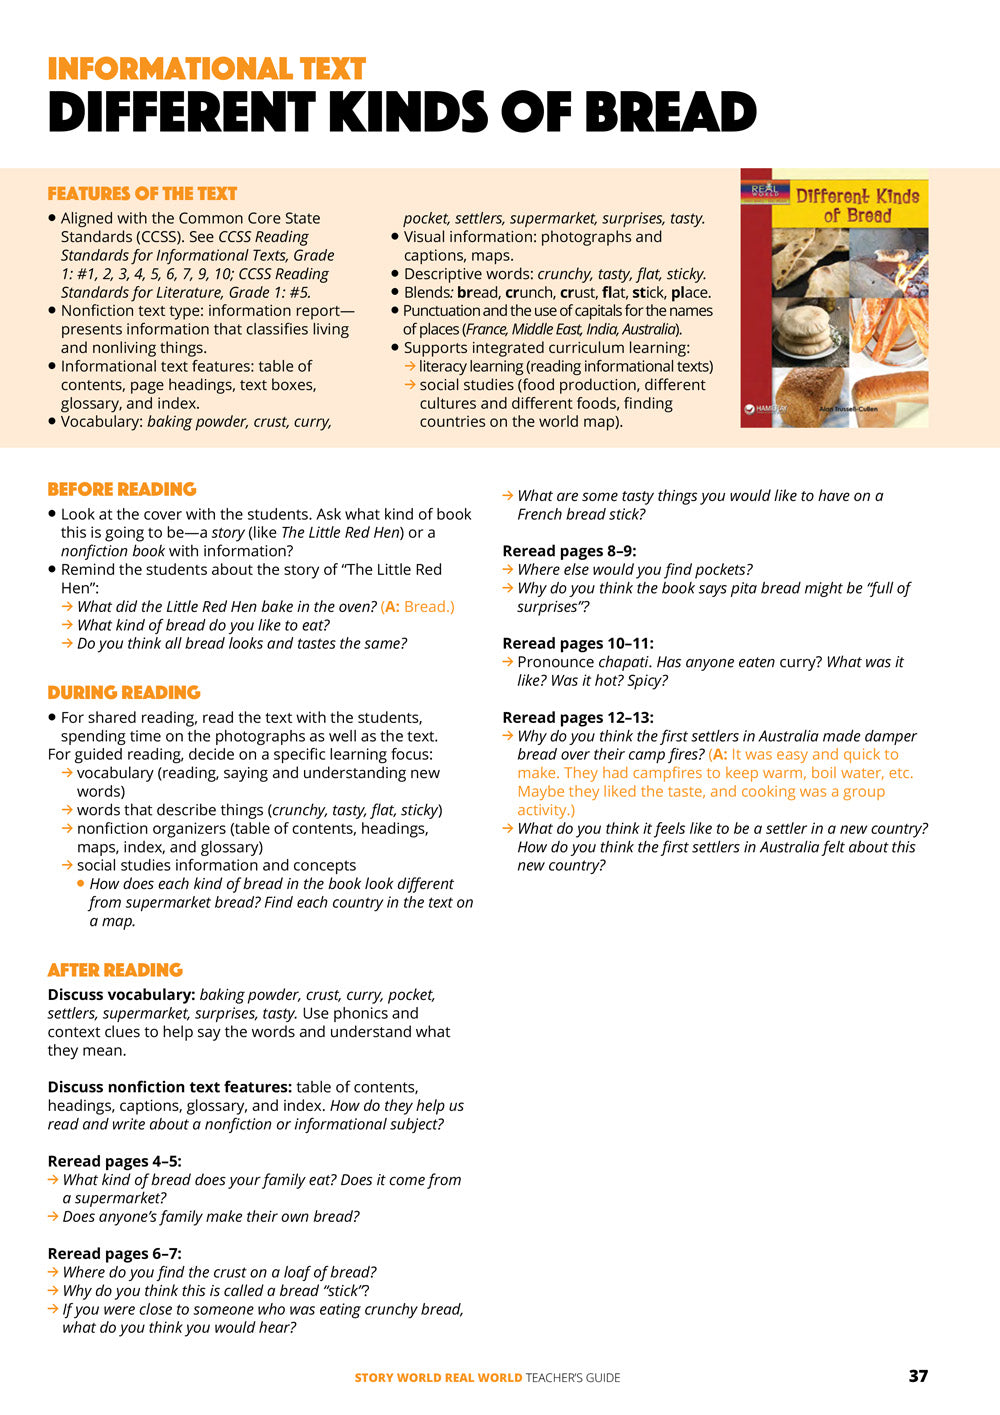 Different Kinds of Bread Teacher's Guide